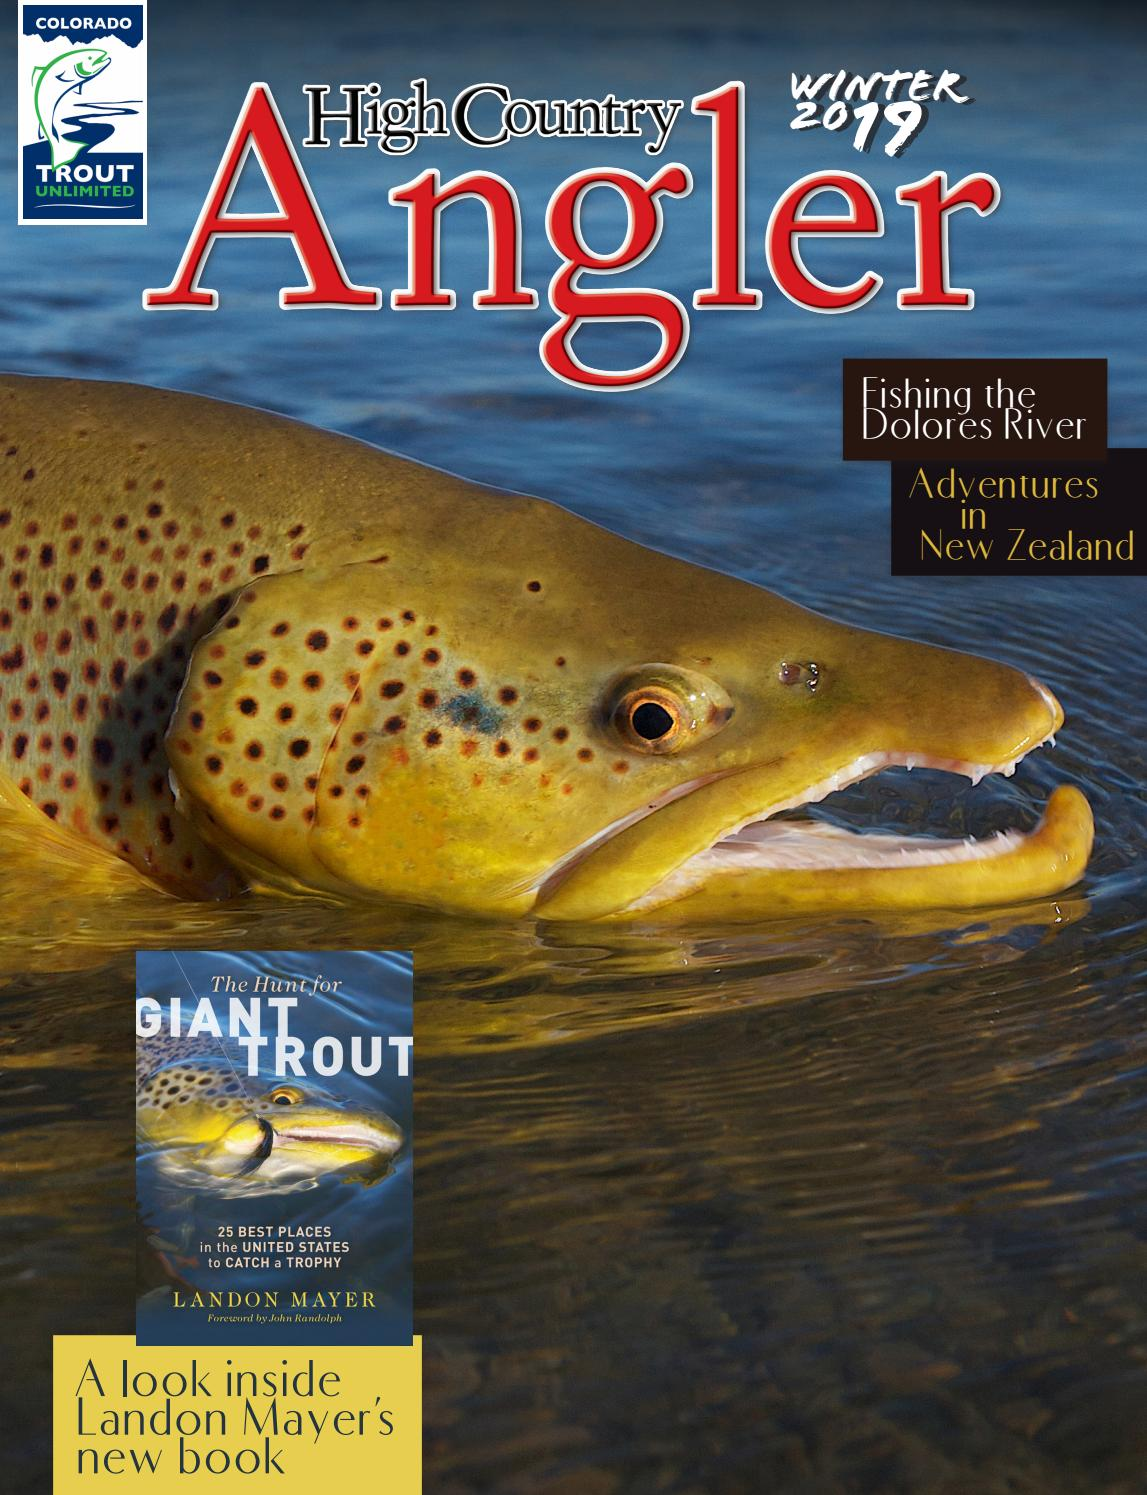 1 Flash Bang Midge Black Size 18 or 20 Fly Fishing Nymph for Tailwater Trout